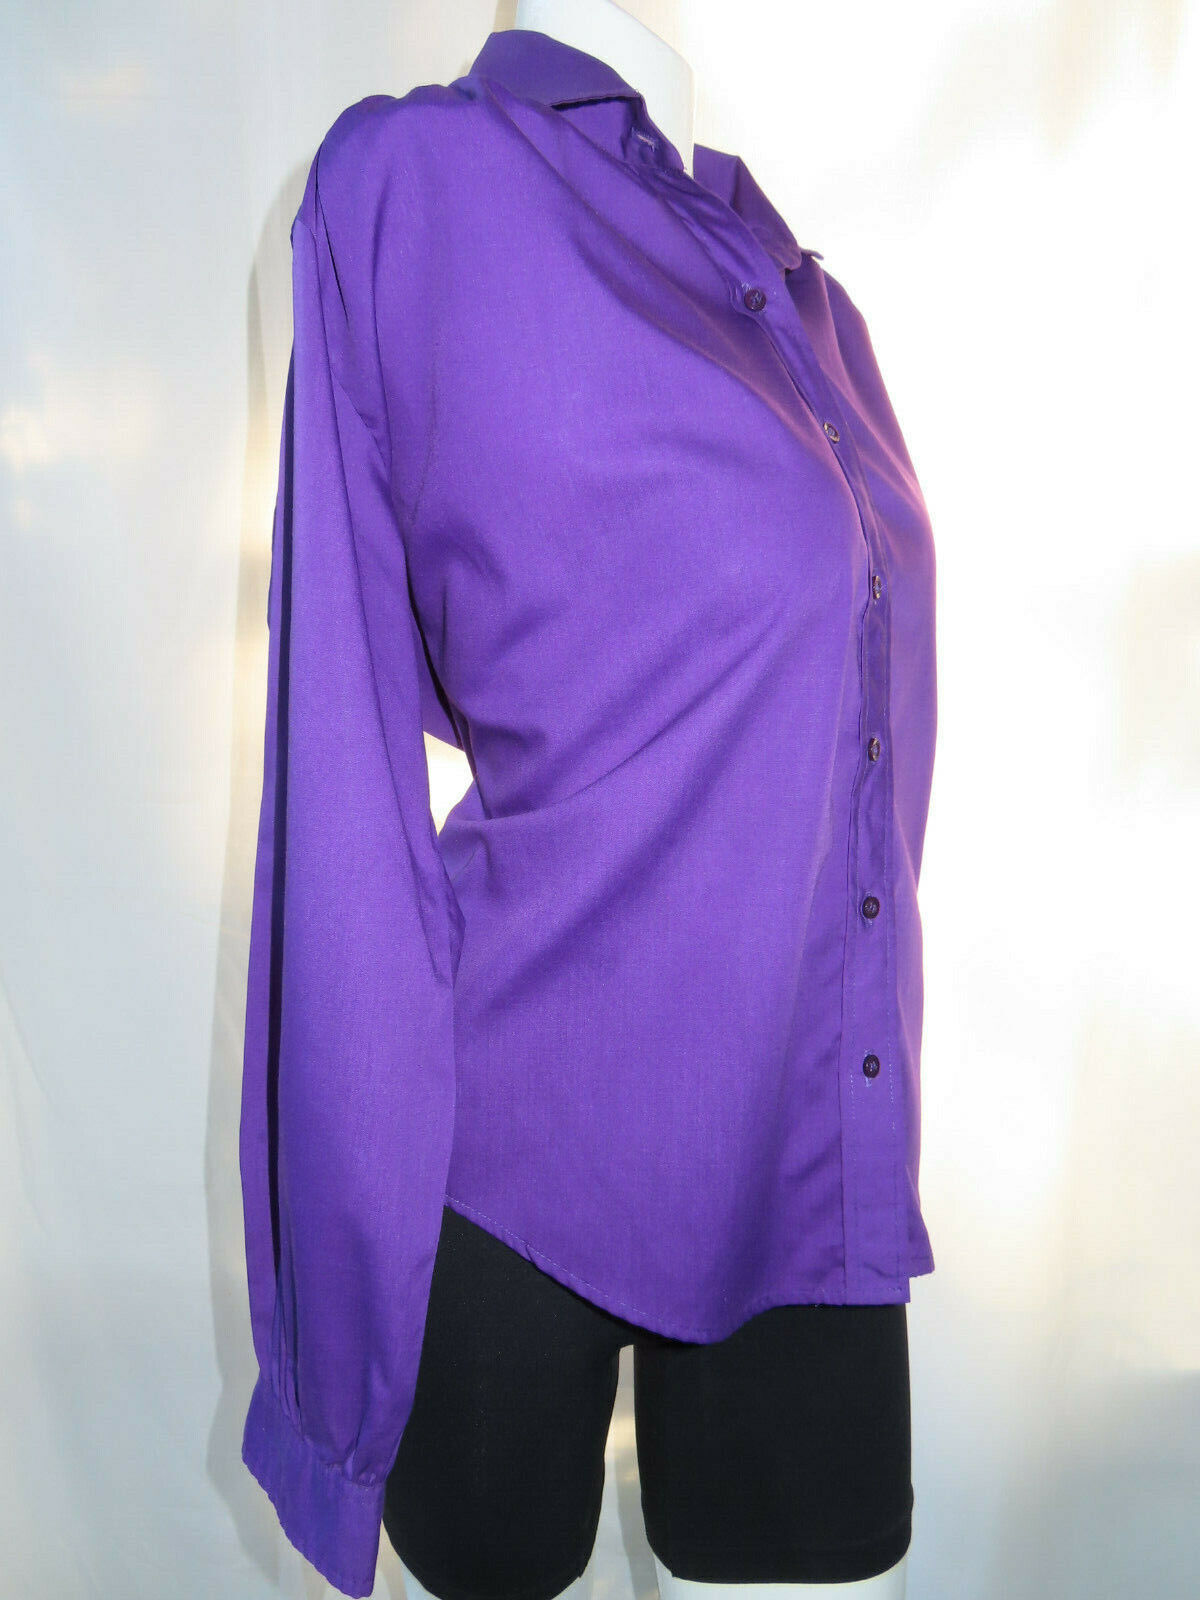 Cat Cay Women's Shirt Button Down Purple Vintage Blouse Size 12.